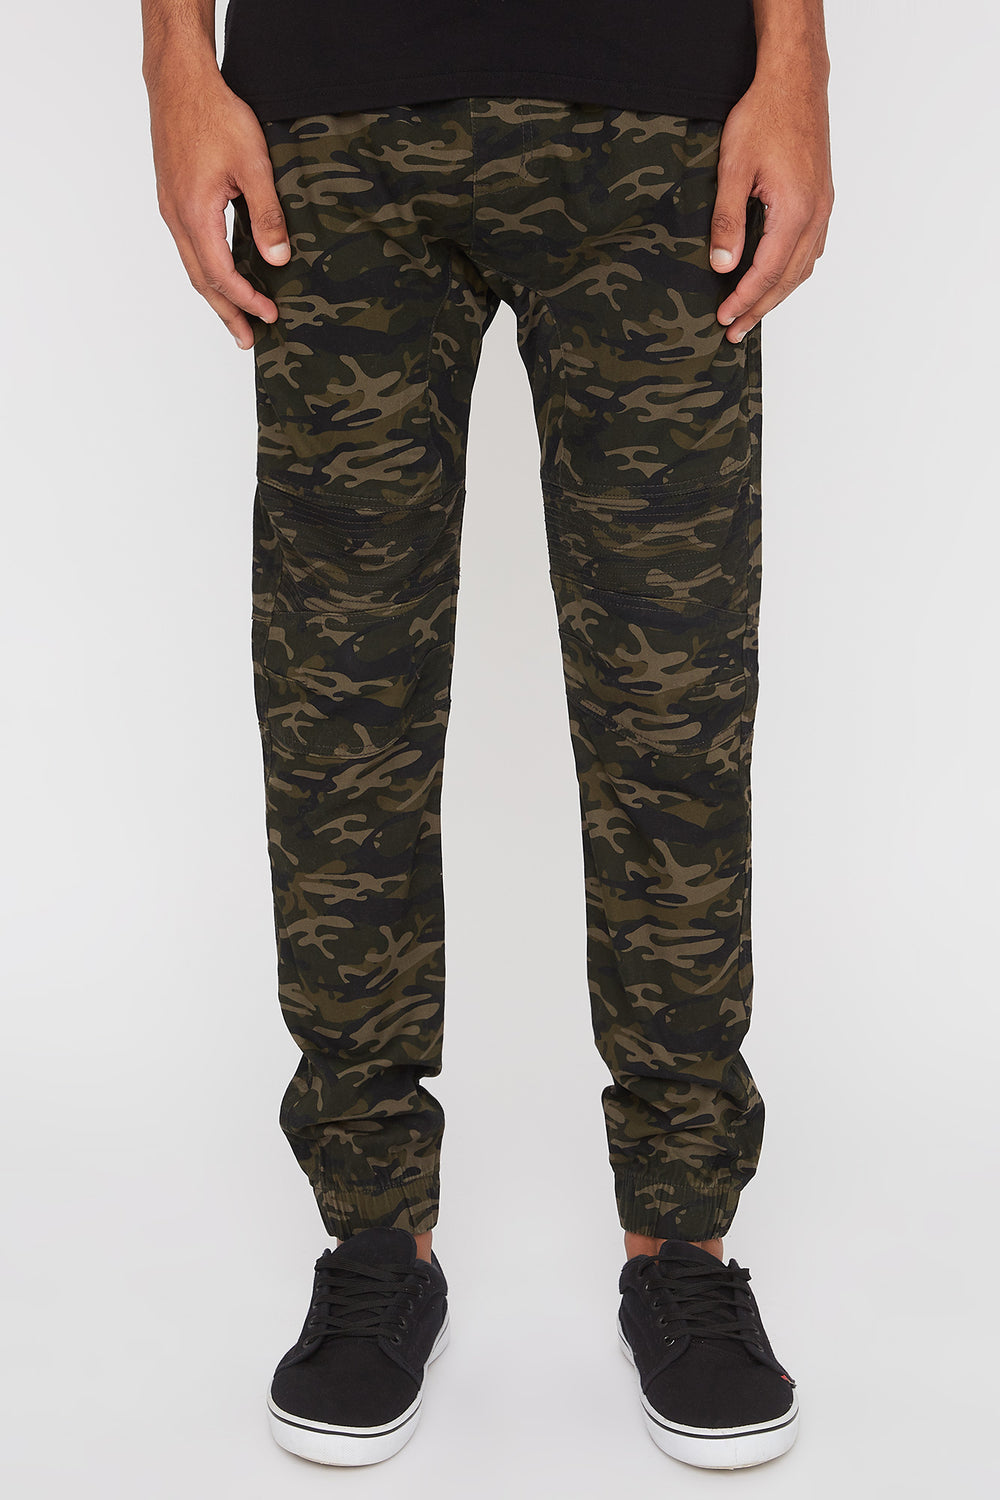 Jogger Moto Camouflage West49 Homme Camoufle